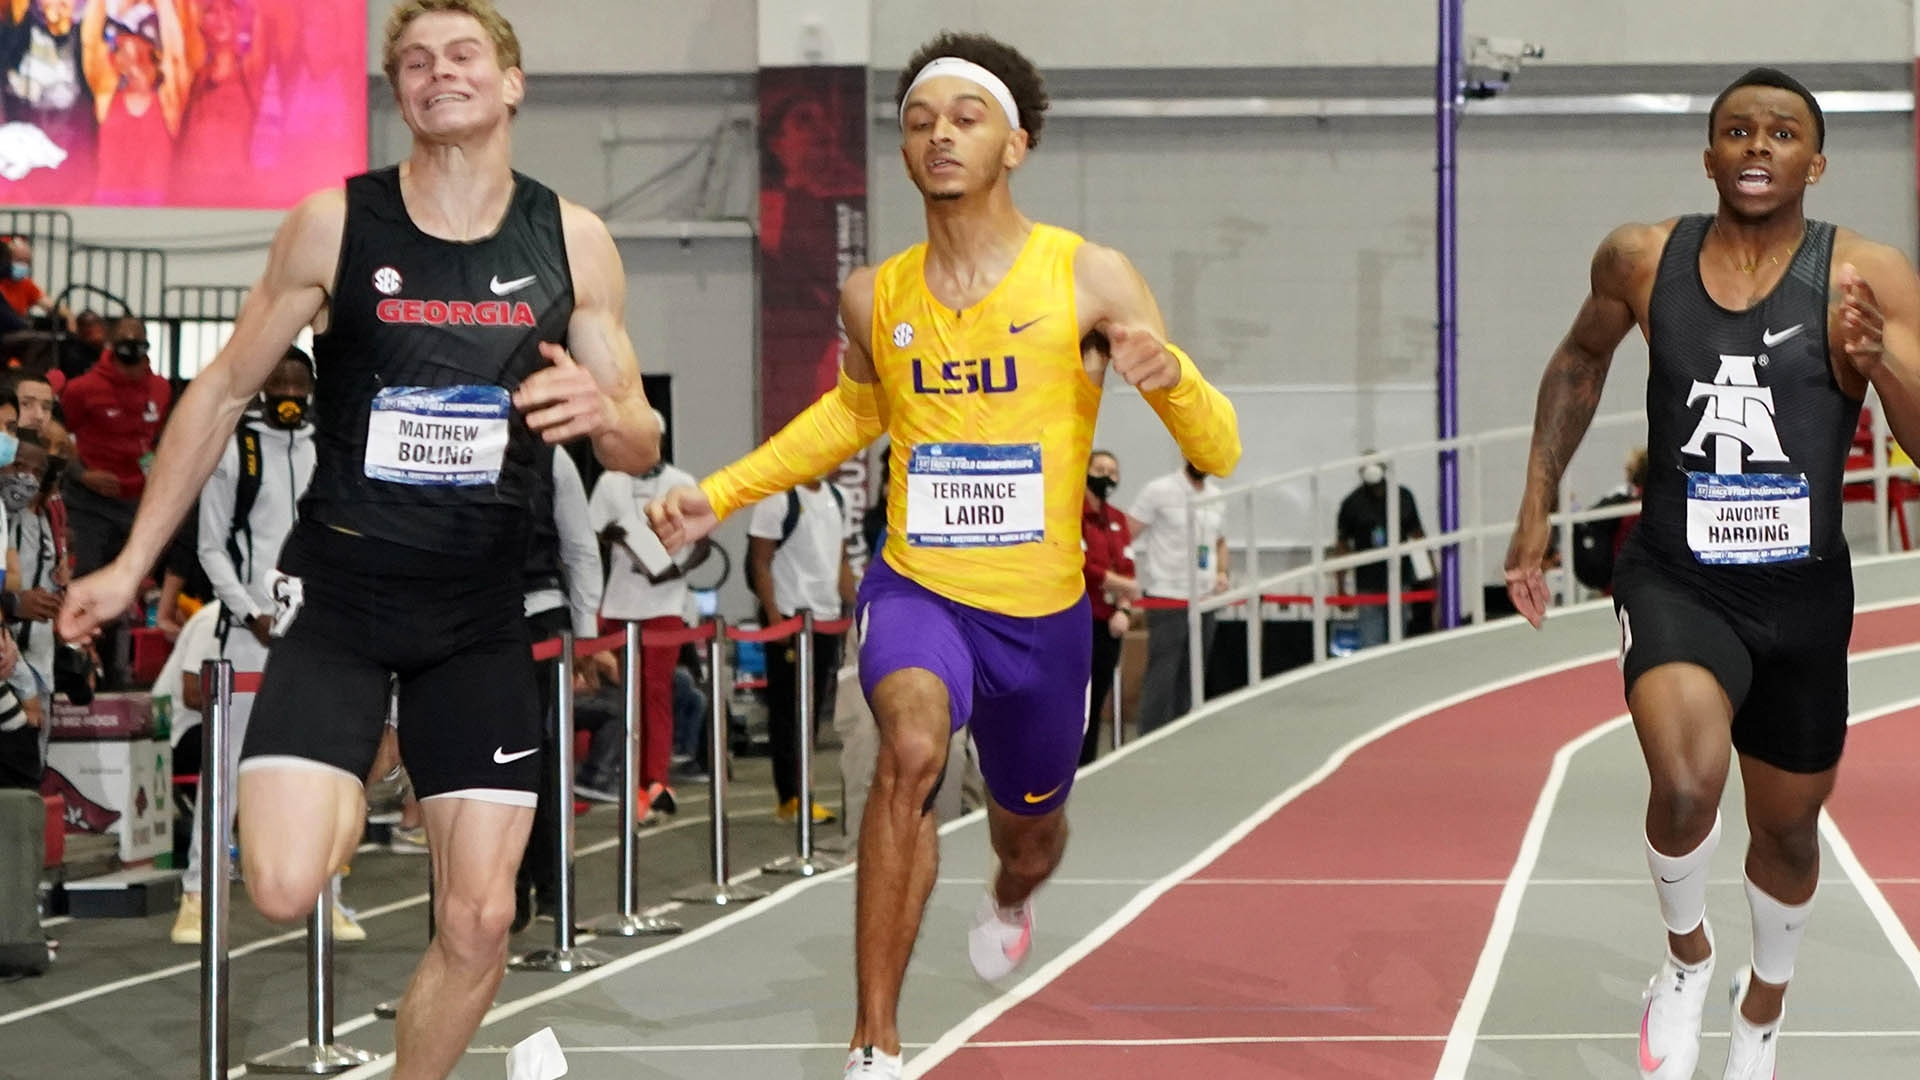 Terrance Laird competes in the 200m at 2021 NCAA Indoors